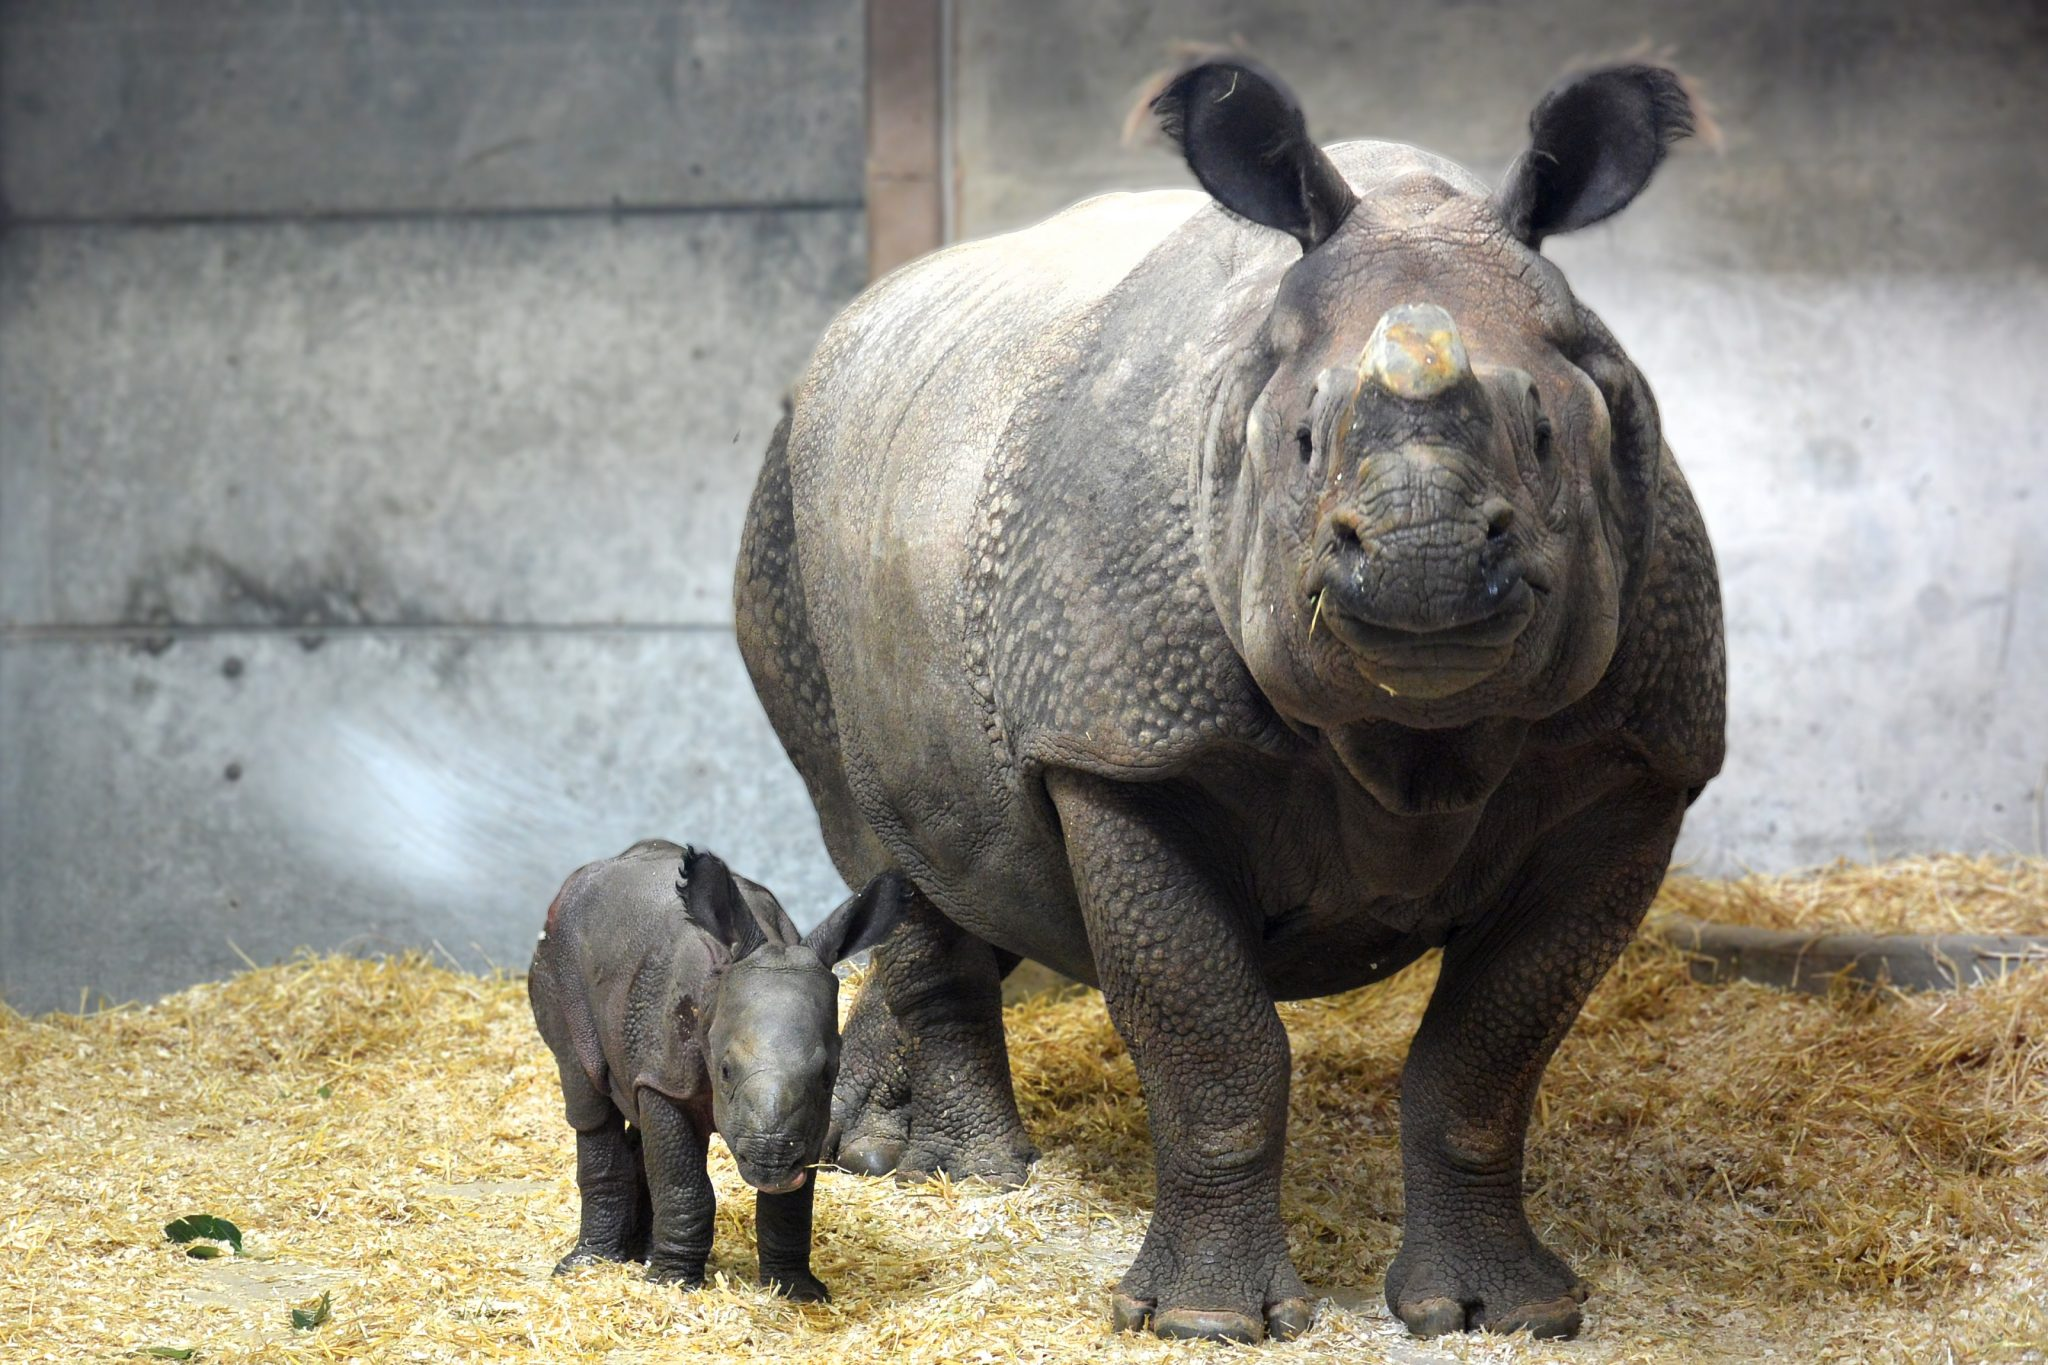 Indian one-horned rhino Tensing and her new baby at the Denver Zoo.